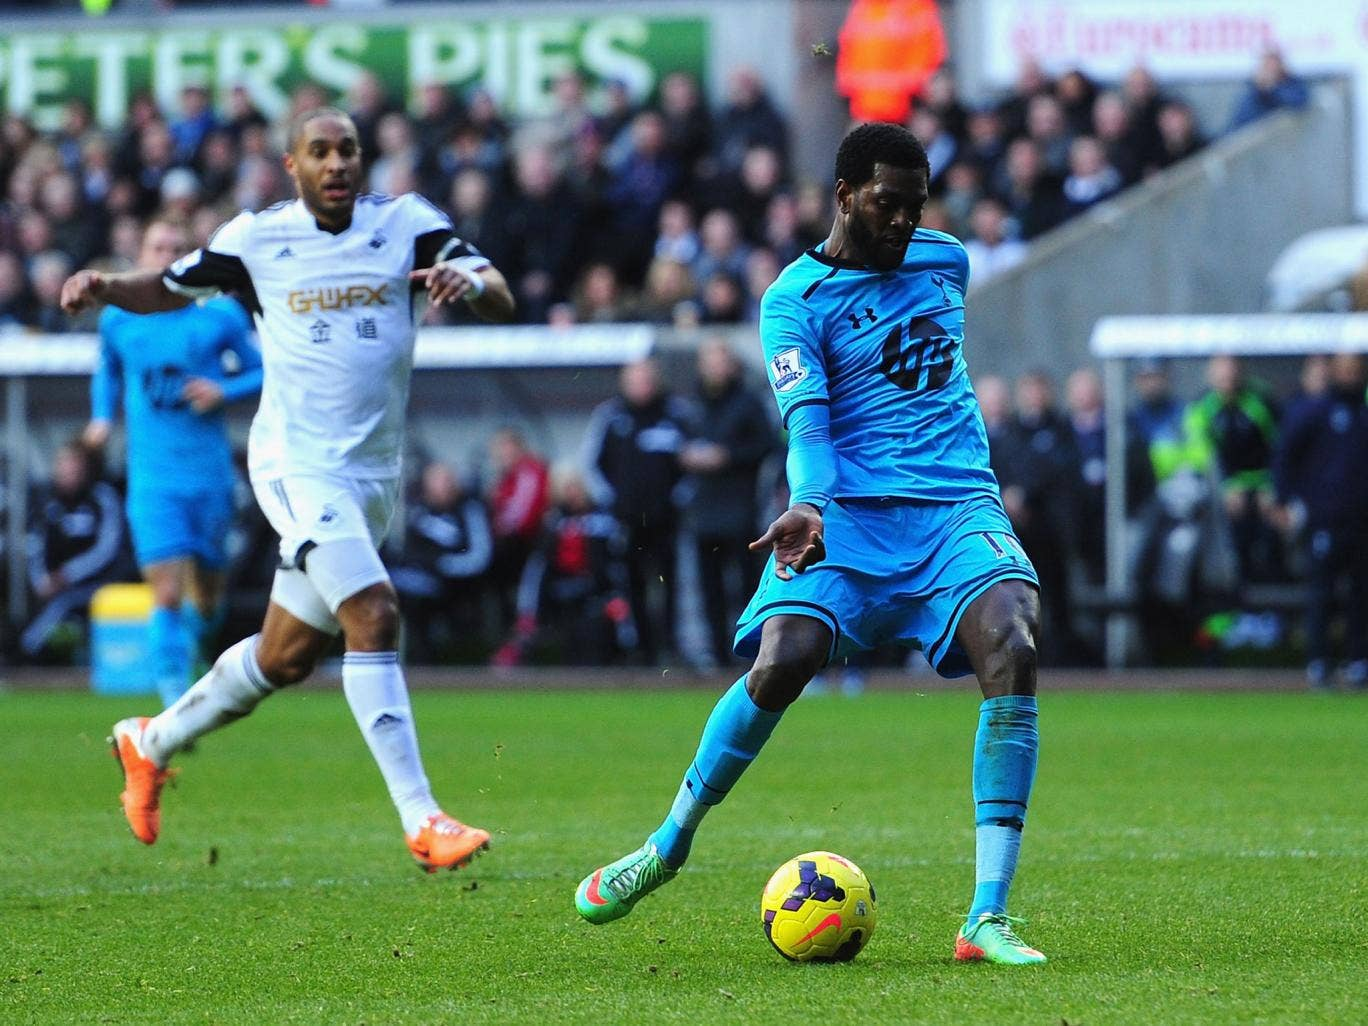 Emmanuel Adebayor has been praised by Tottenham manager Tim Sherwood for his resurgence in form